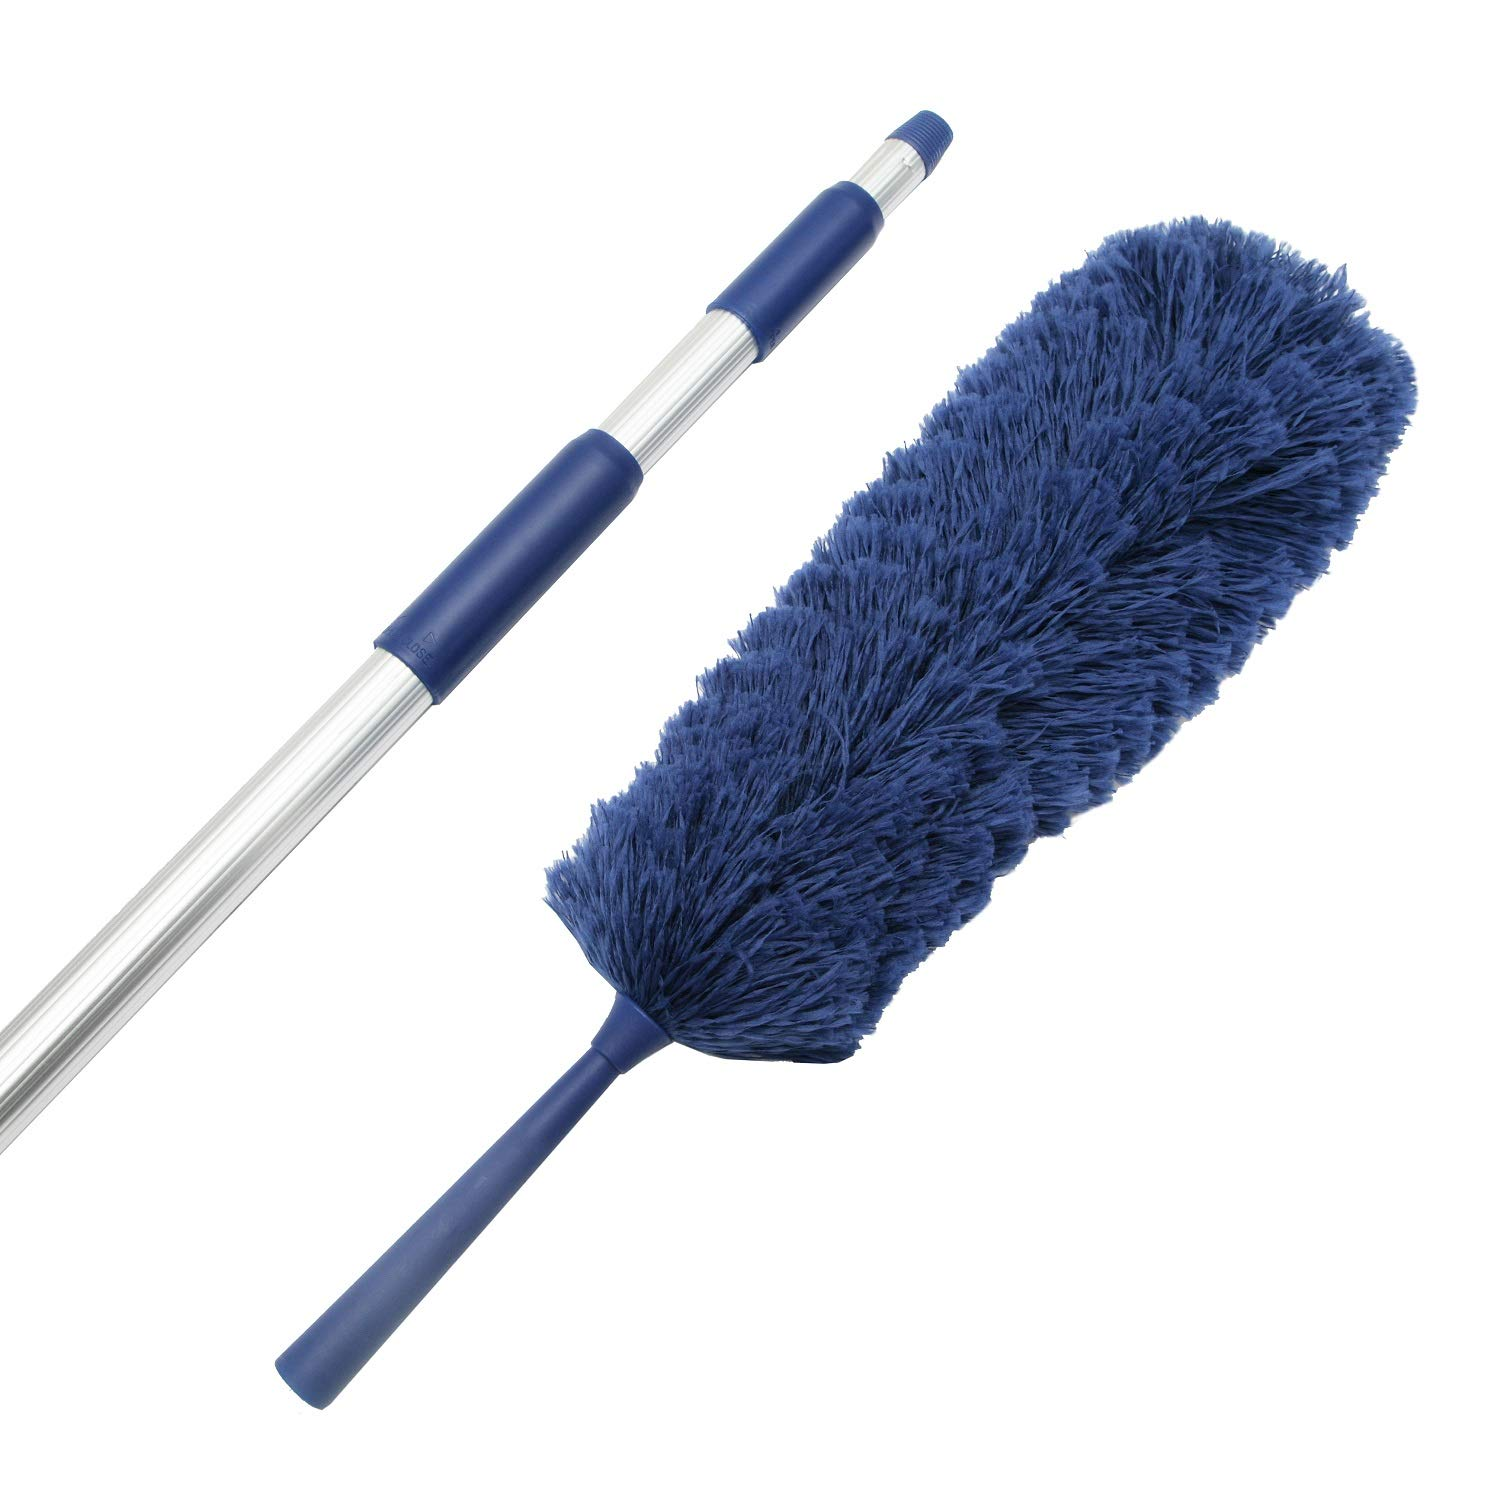 Extension Rod & Blue Extension Duster, Extend 18-20 feet Cleaning High Ceilings, Cathedral Ceilings, Ceiling Fans, Book Shelve, Curtain Rods, Micro Fiber Duster, Cobweb Duster, Pest Control Duster